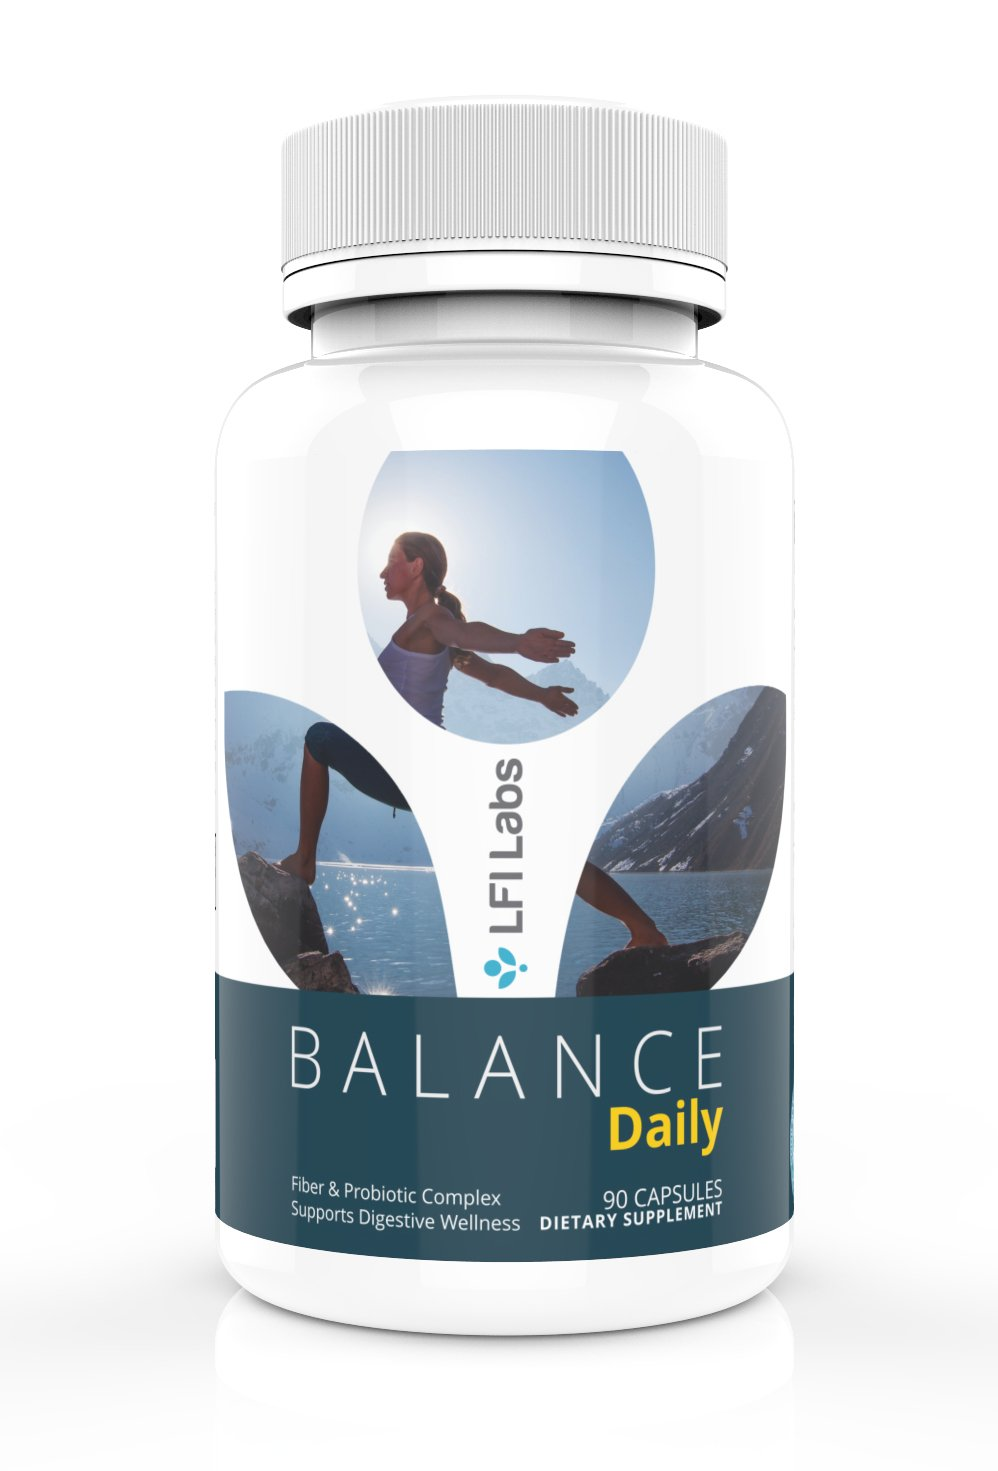 Balance Daily Cleanse: Prebiotic Fiber & Probiotic Supplement — Gentle Maintenance Cleanse & Detox, w/Fiber and Probiotic for Healthy Gut Flora — Eliminate Toxins and Lose Weight. Doctor Recommended